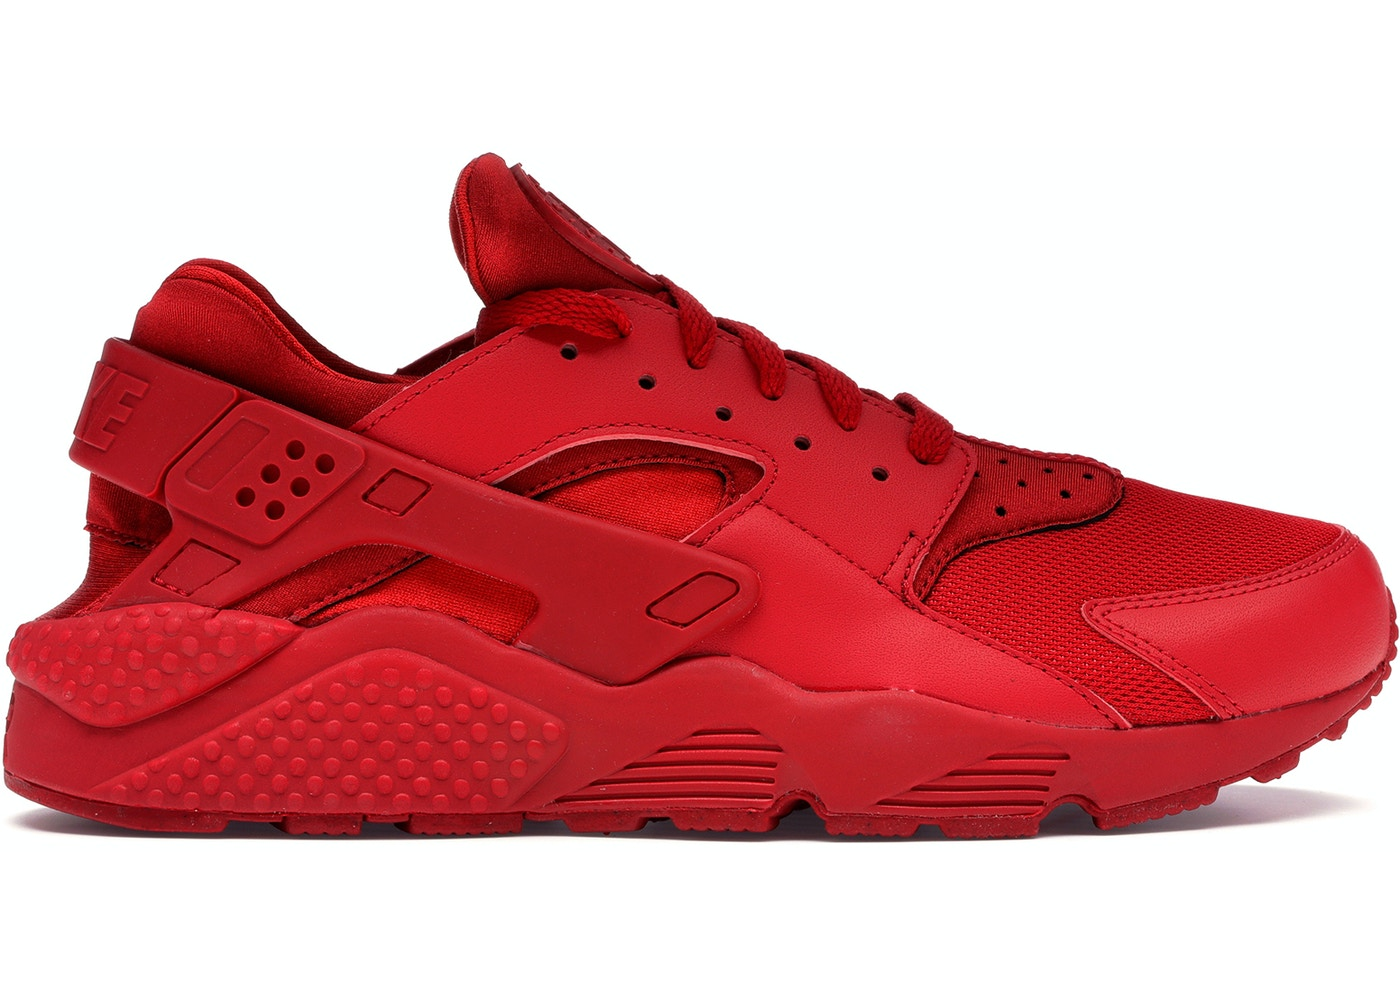 hot sale online 80bbd 55a97 Air Huarache Triple Red - 318429-660